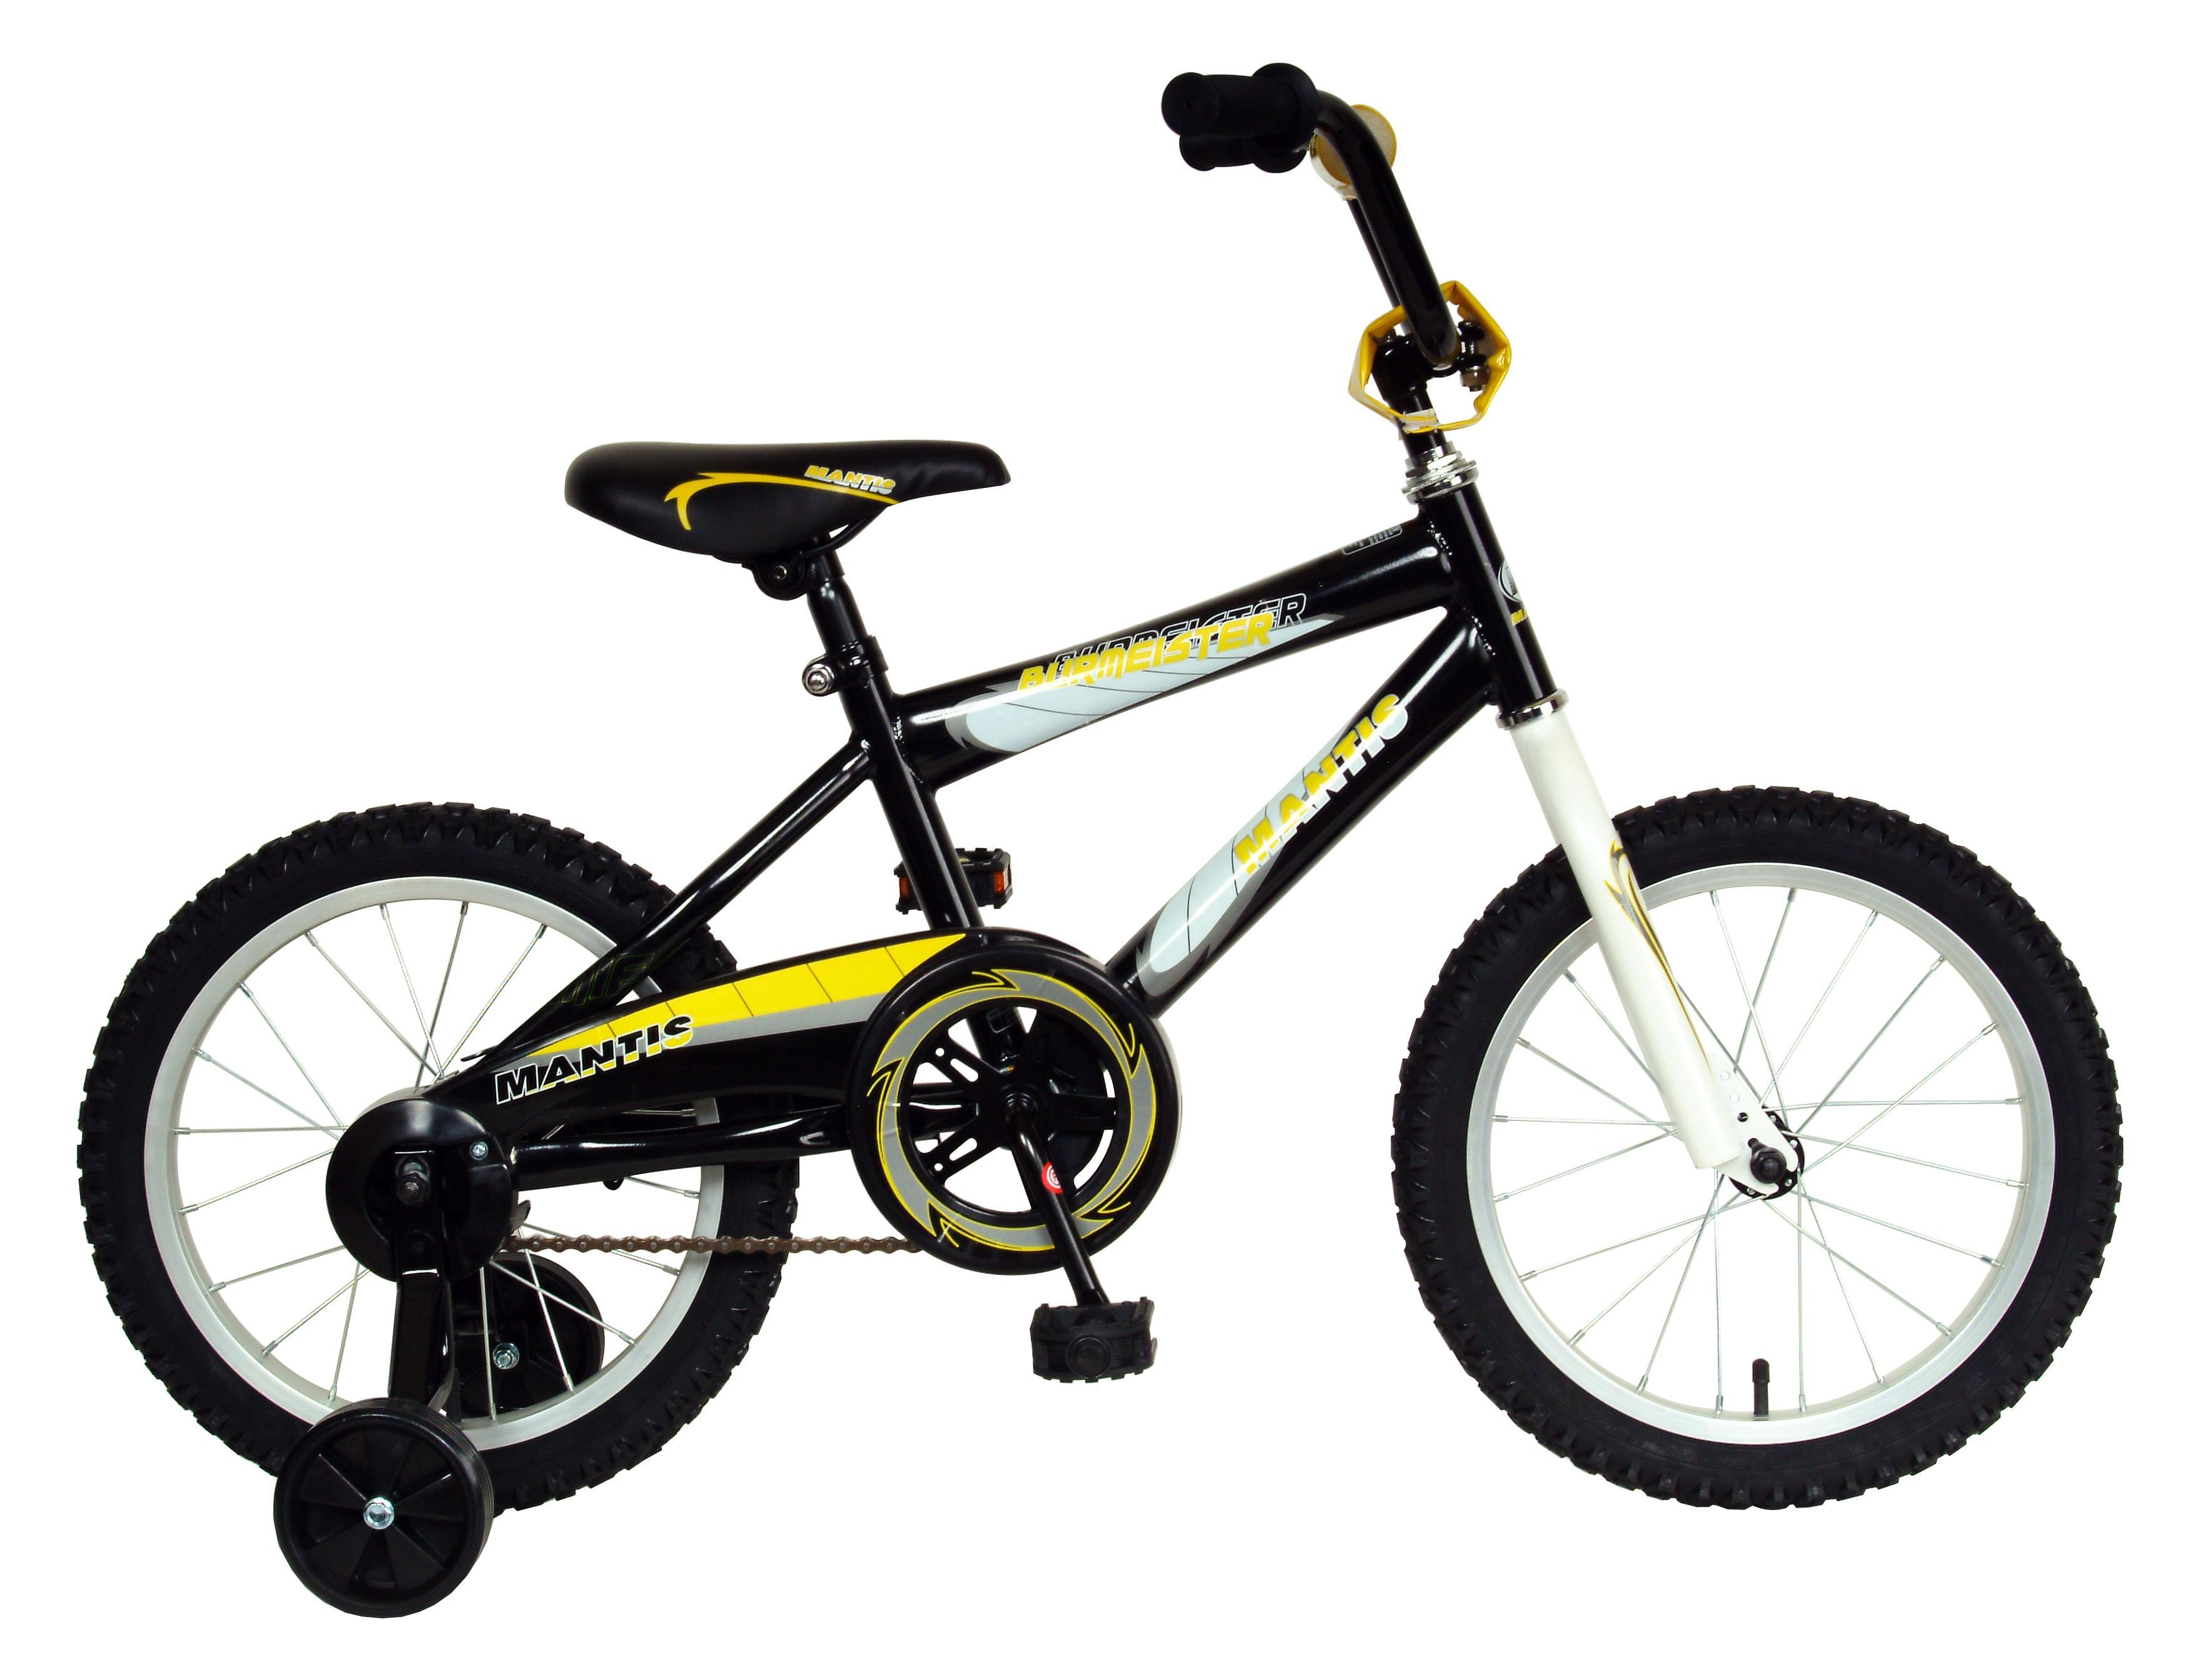 Bikes 16 Inch Boy inch Boy s Bicycle